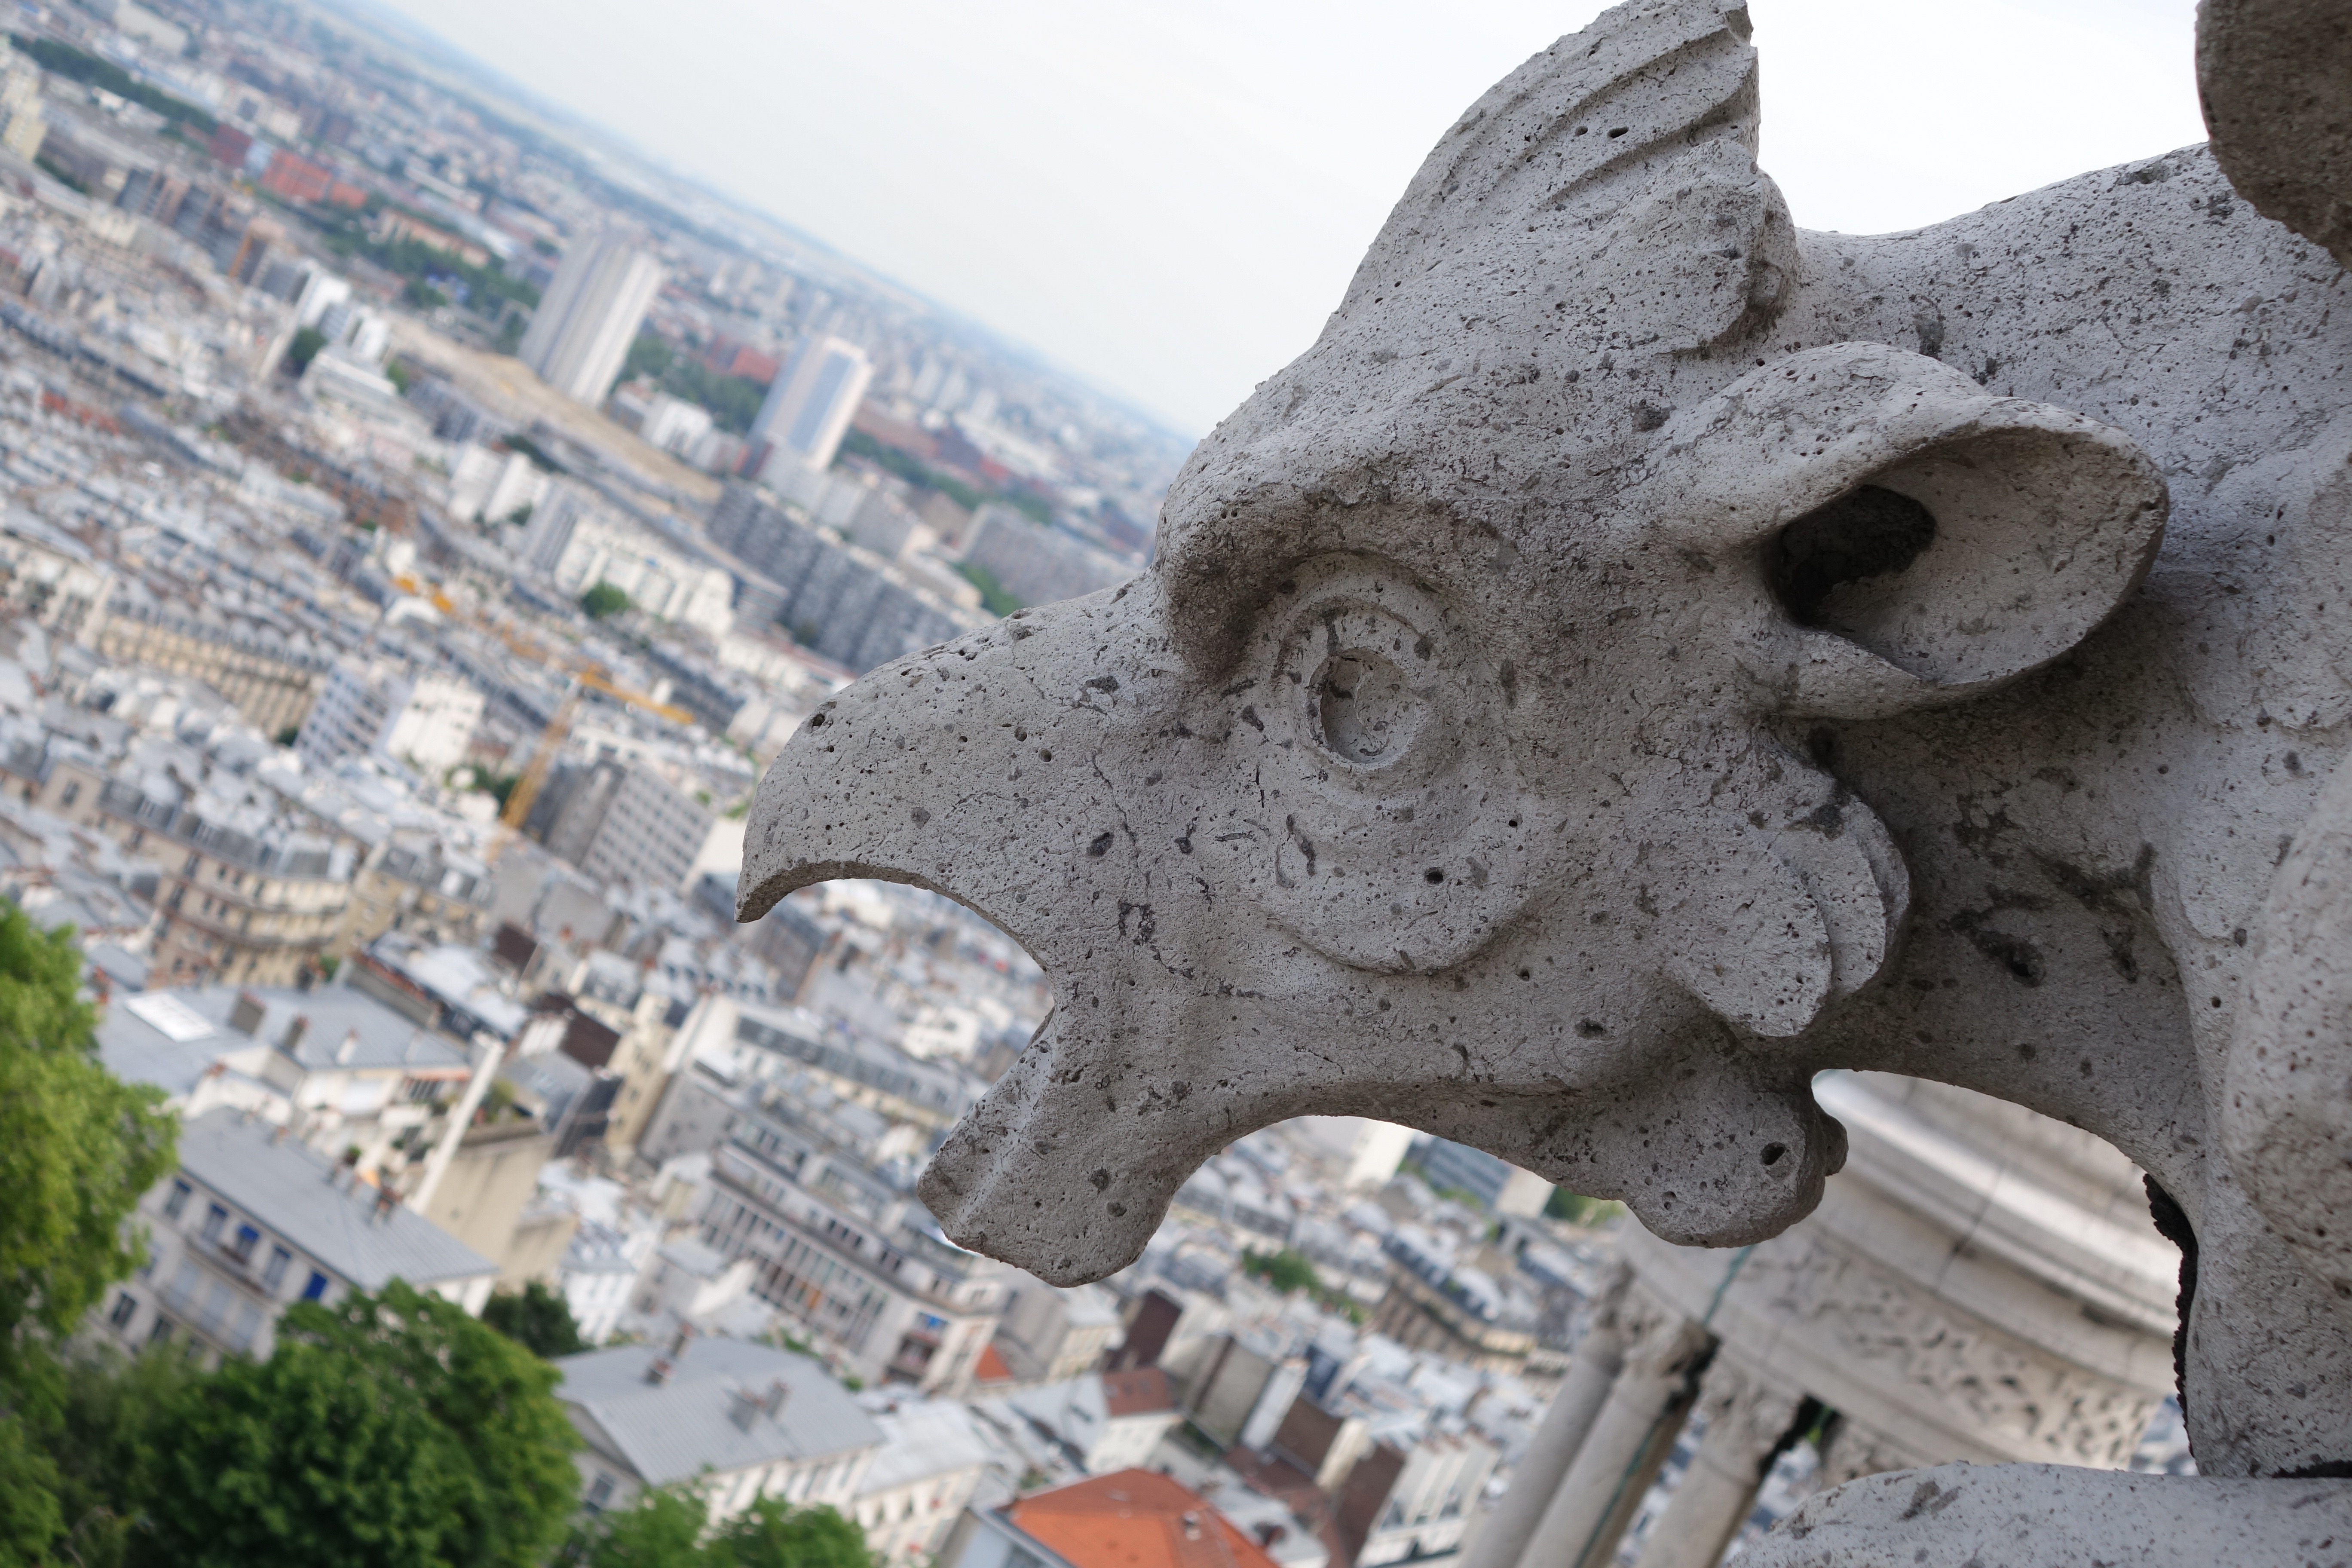 Detail of Gargoyle of Sacré Cœur